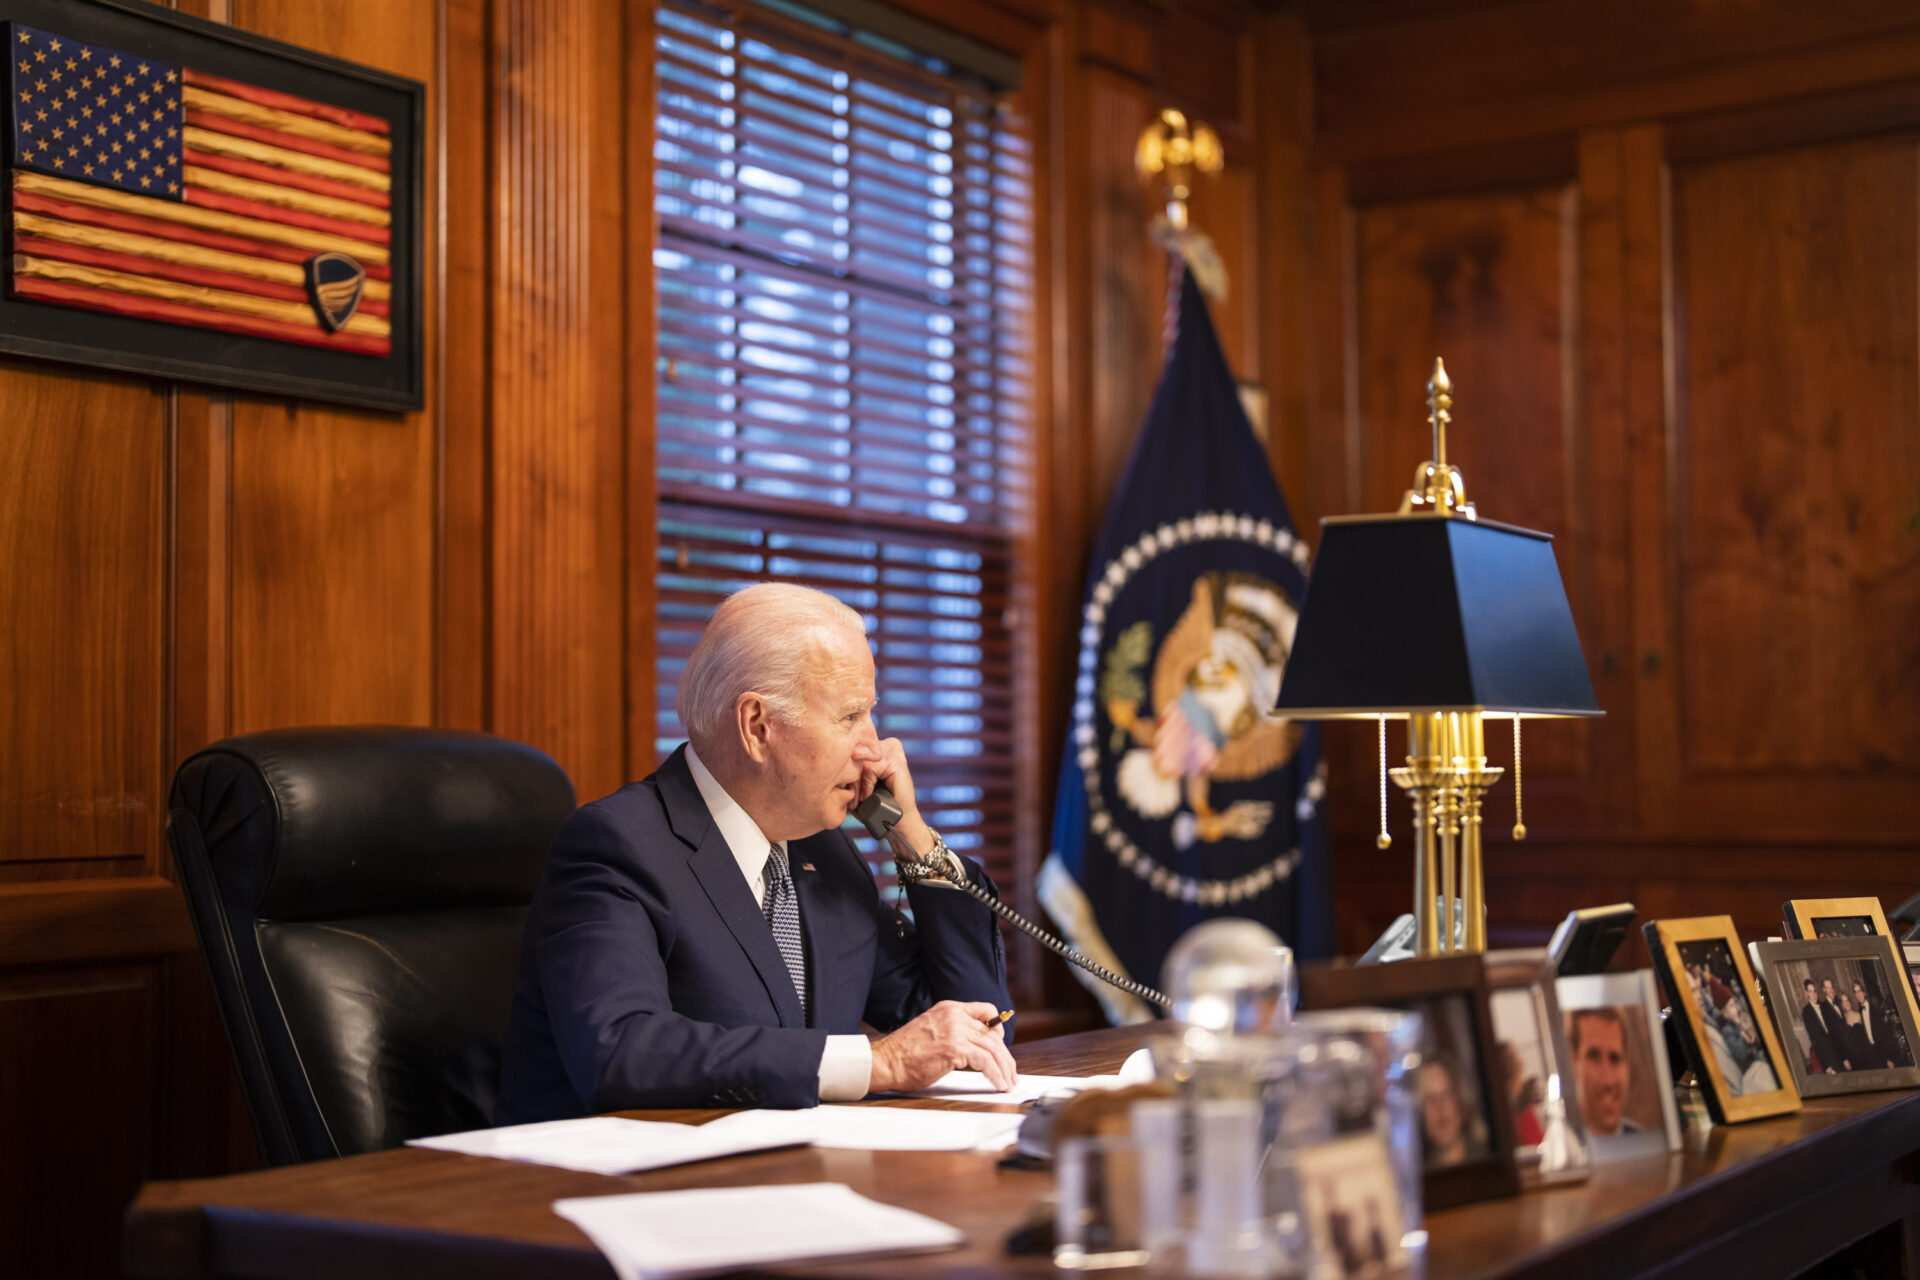 The U.S. And Its P5+1 Partners Had A Secret Agreement For Iran To Evade Some Nuclear Deal Restrictions Featured